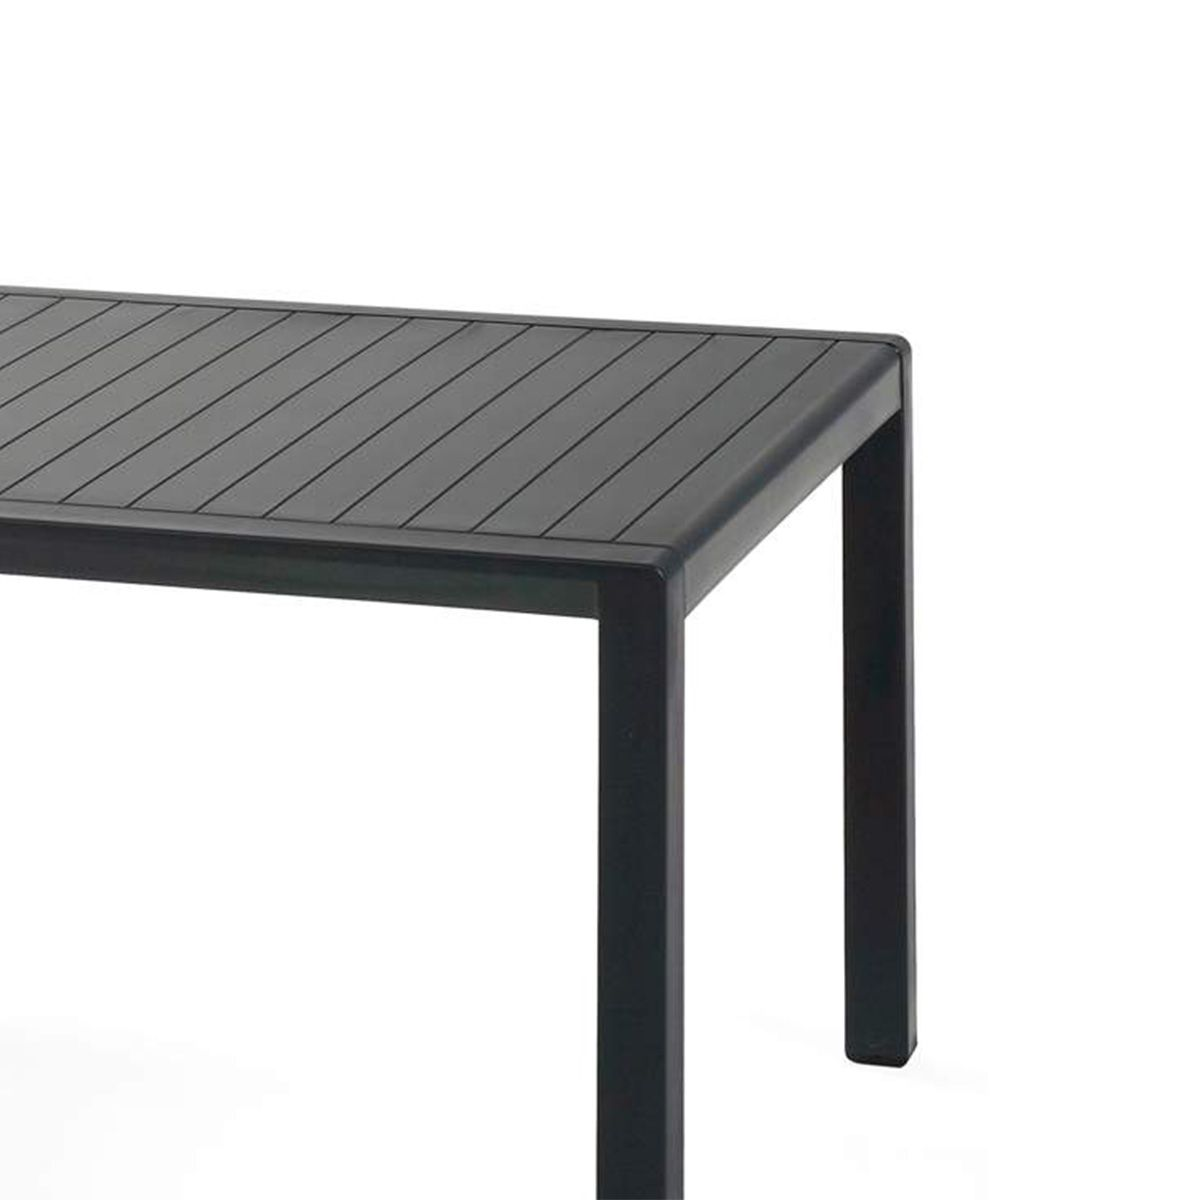 Table basse salon de jardin design Aria Nardi - Zendart Design